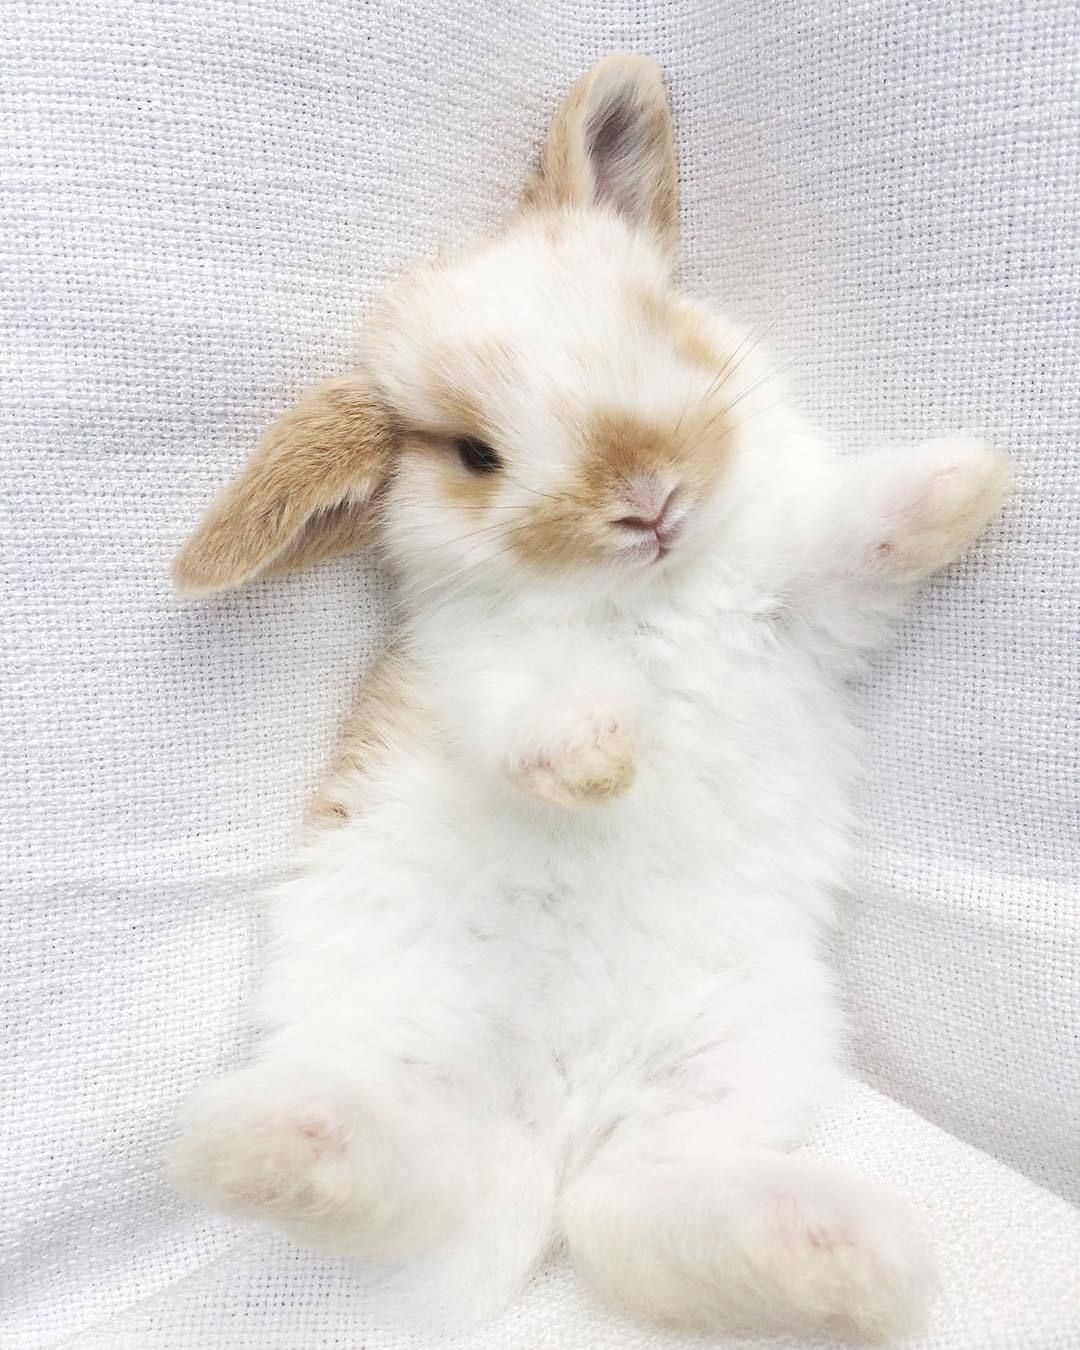 Animals And Nature Adorable Bunnies Baby Animals Funny Cute Baby Animals Fluffy Animals